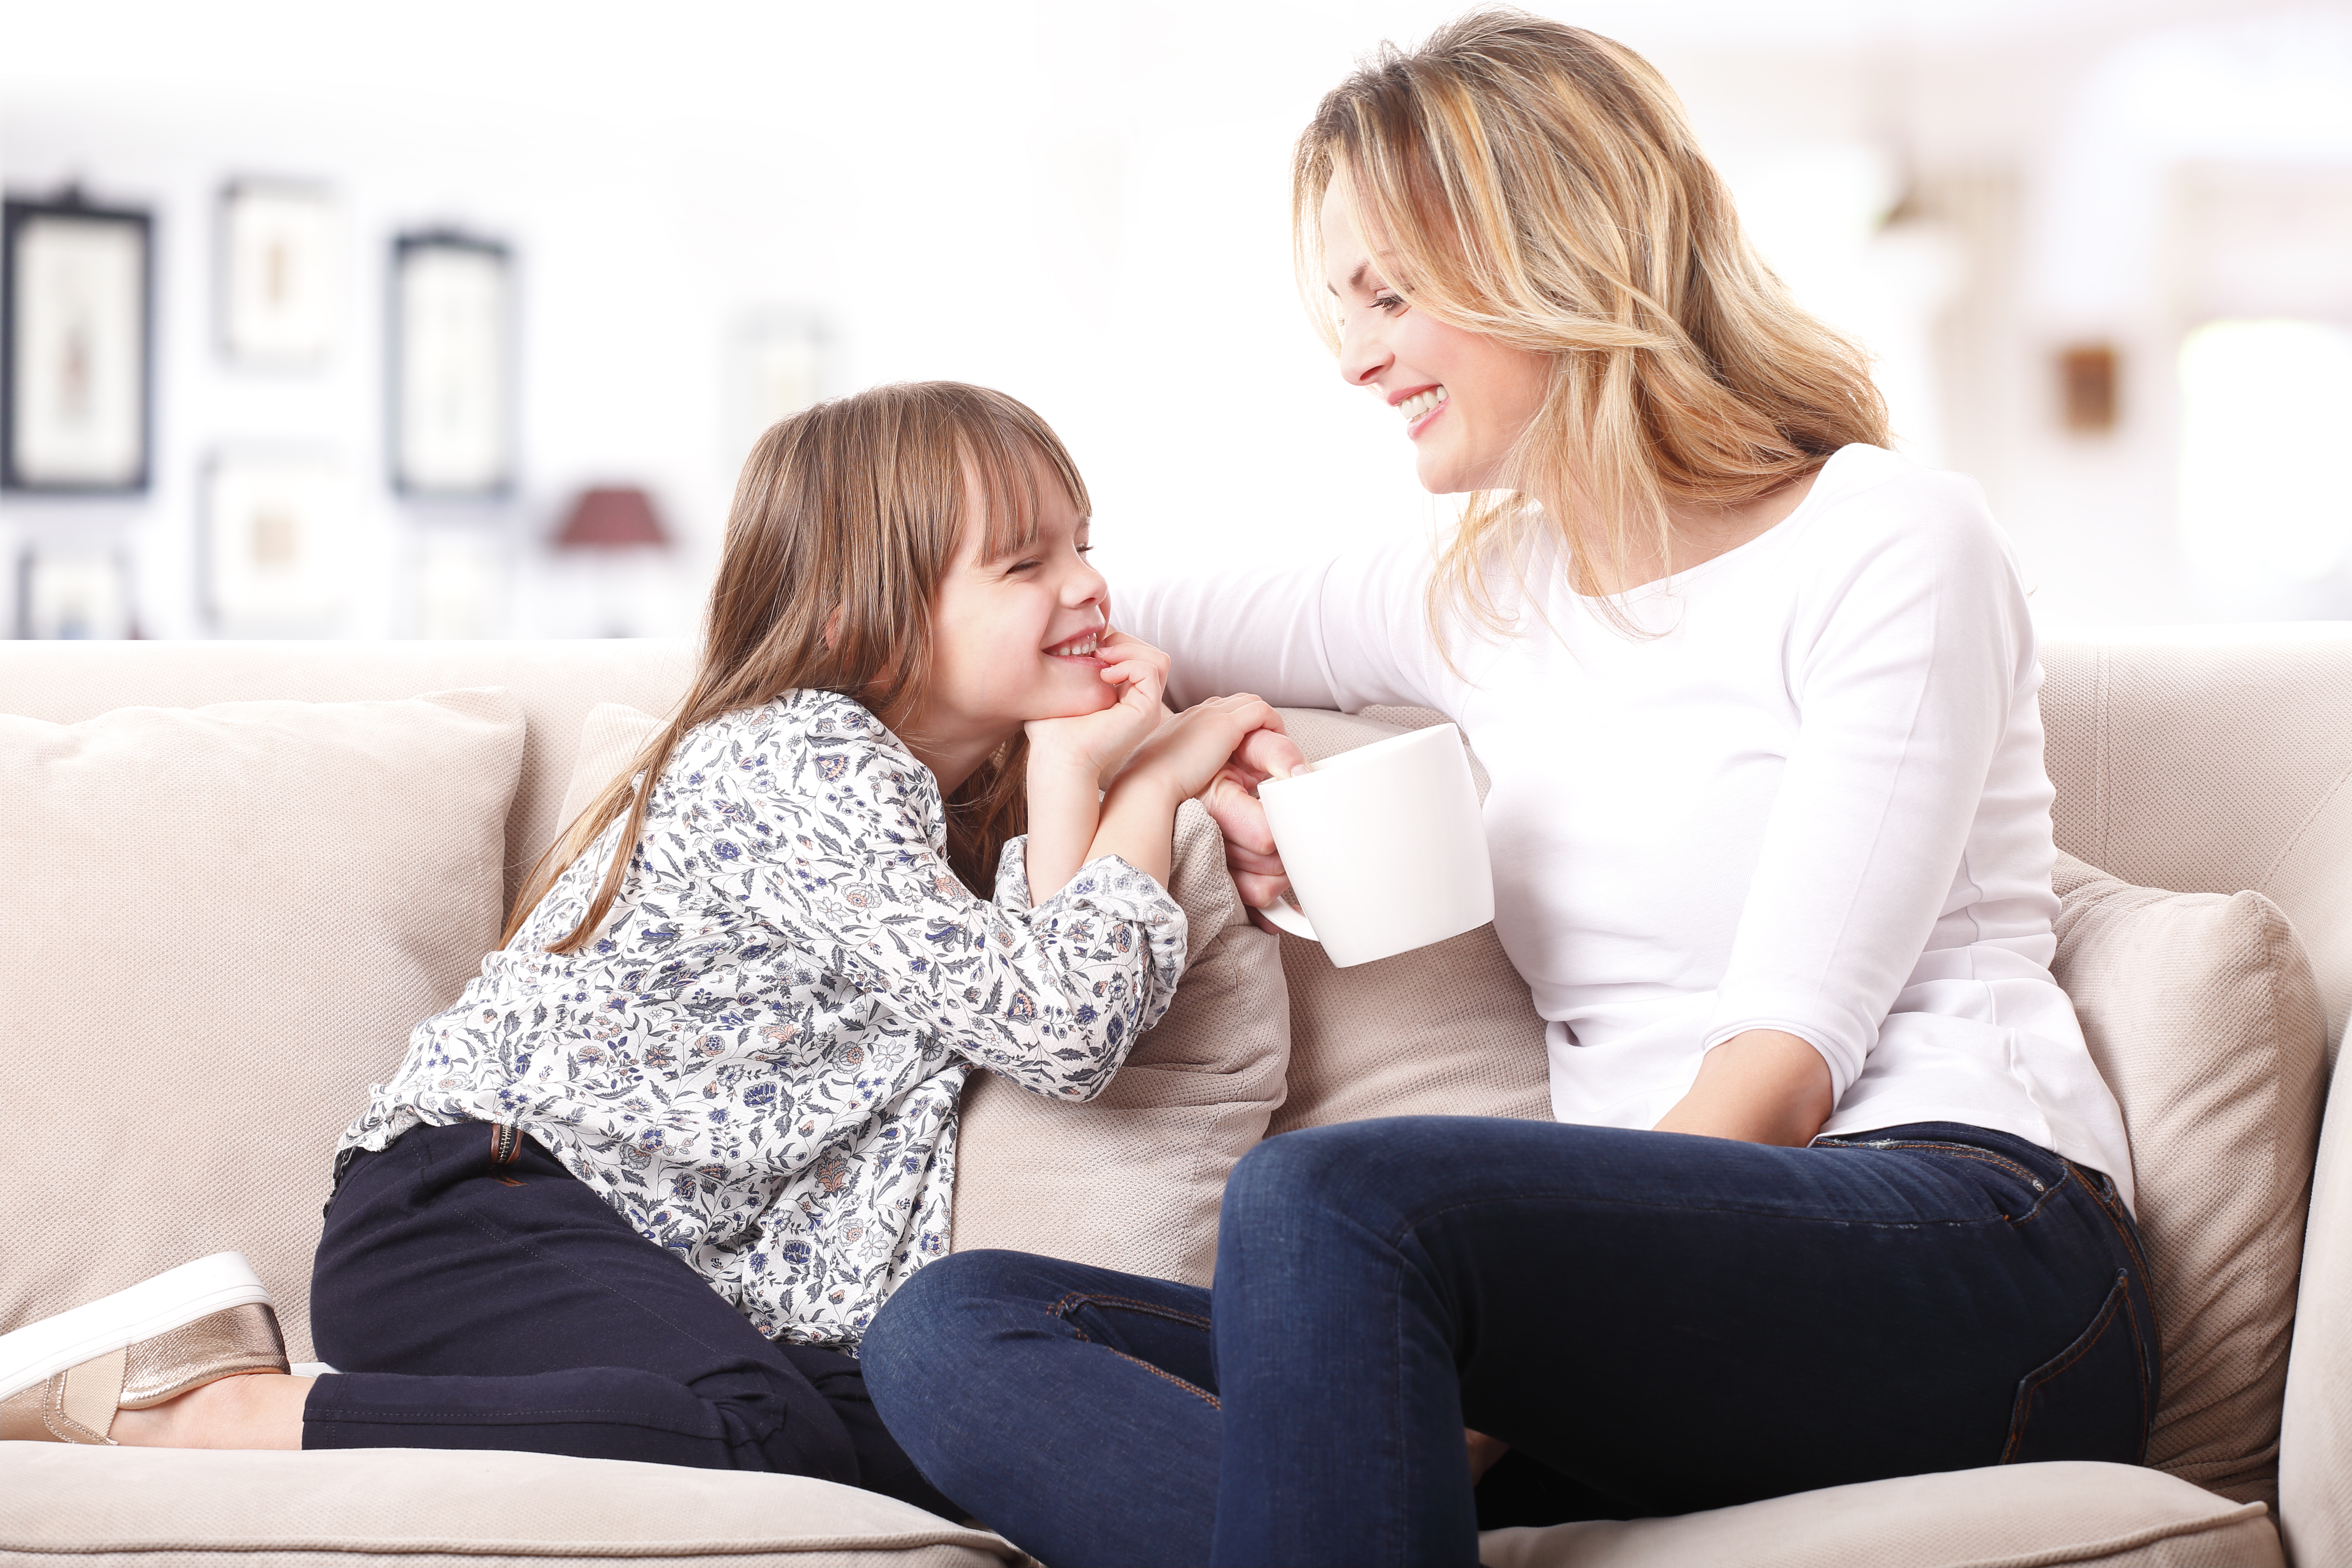 If you want them to listen to you when you talk to children, you should also listen to them when they speak to you, and even more importantly - participate in the conversation. Copyright: Kinga